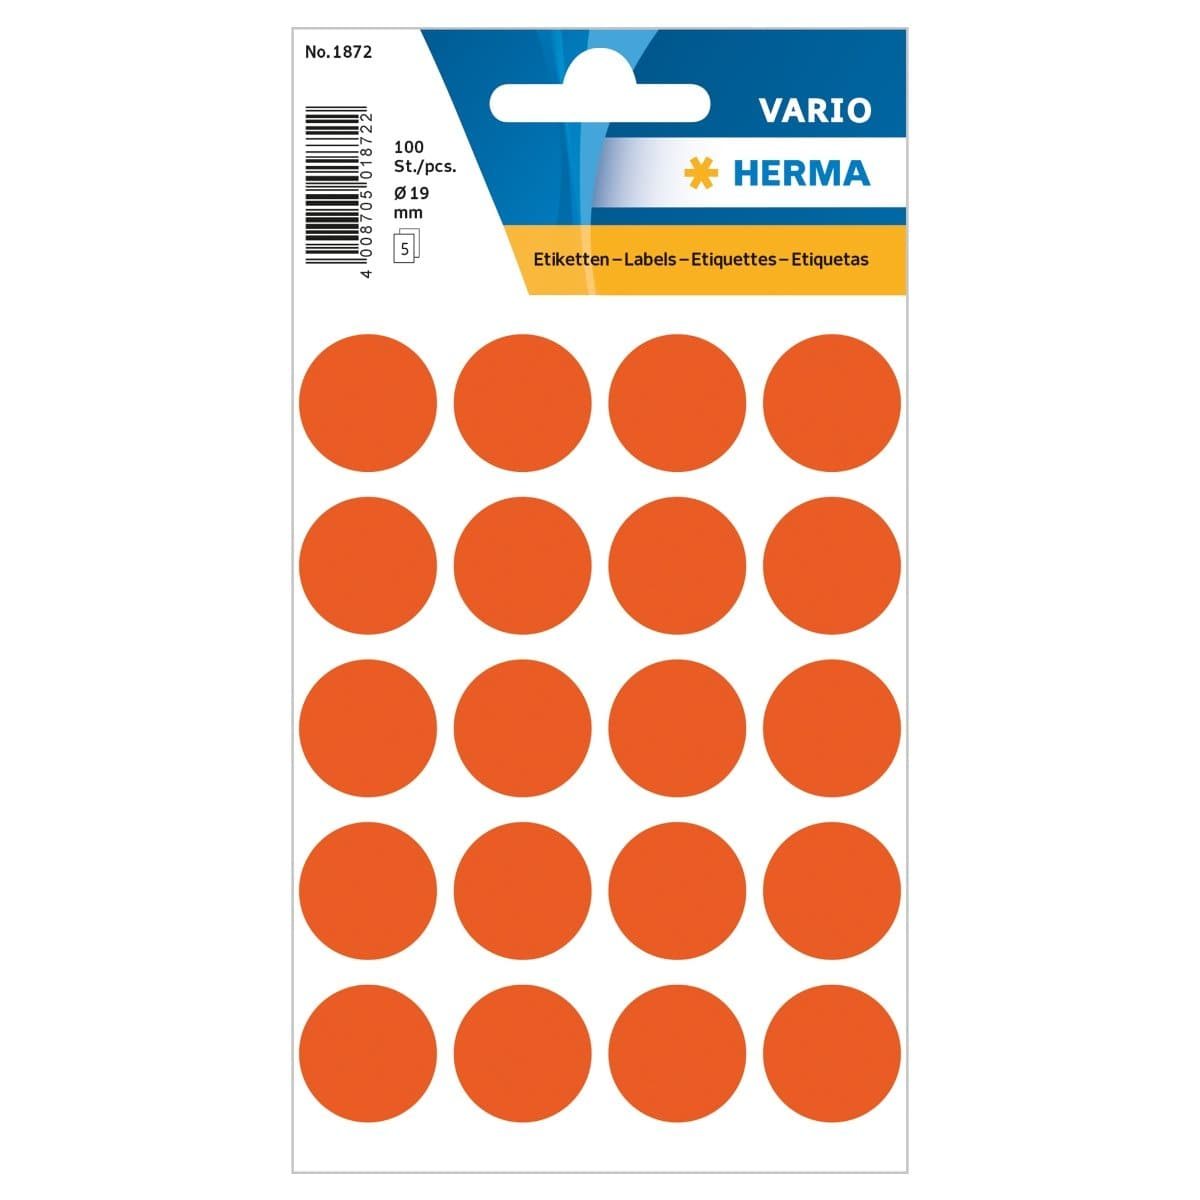 Herma Vario Sticker Color Dots, 19 mm, 100/pack, Red